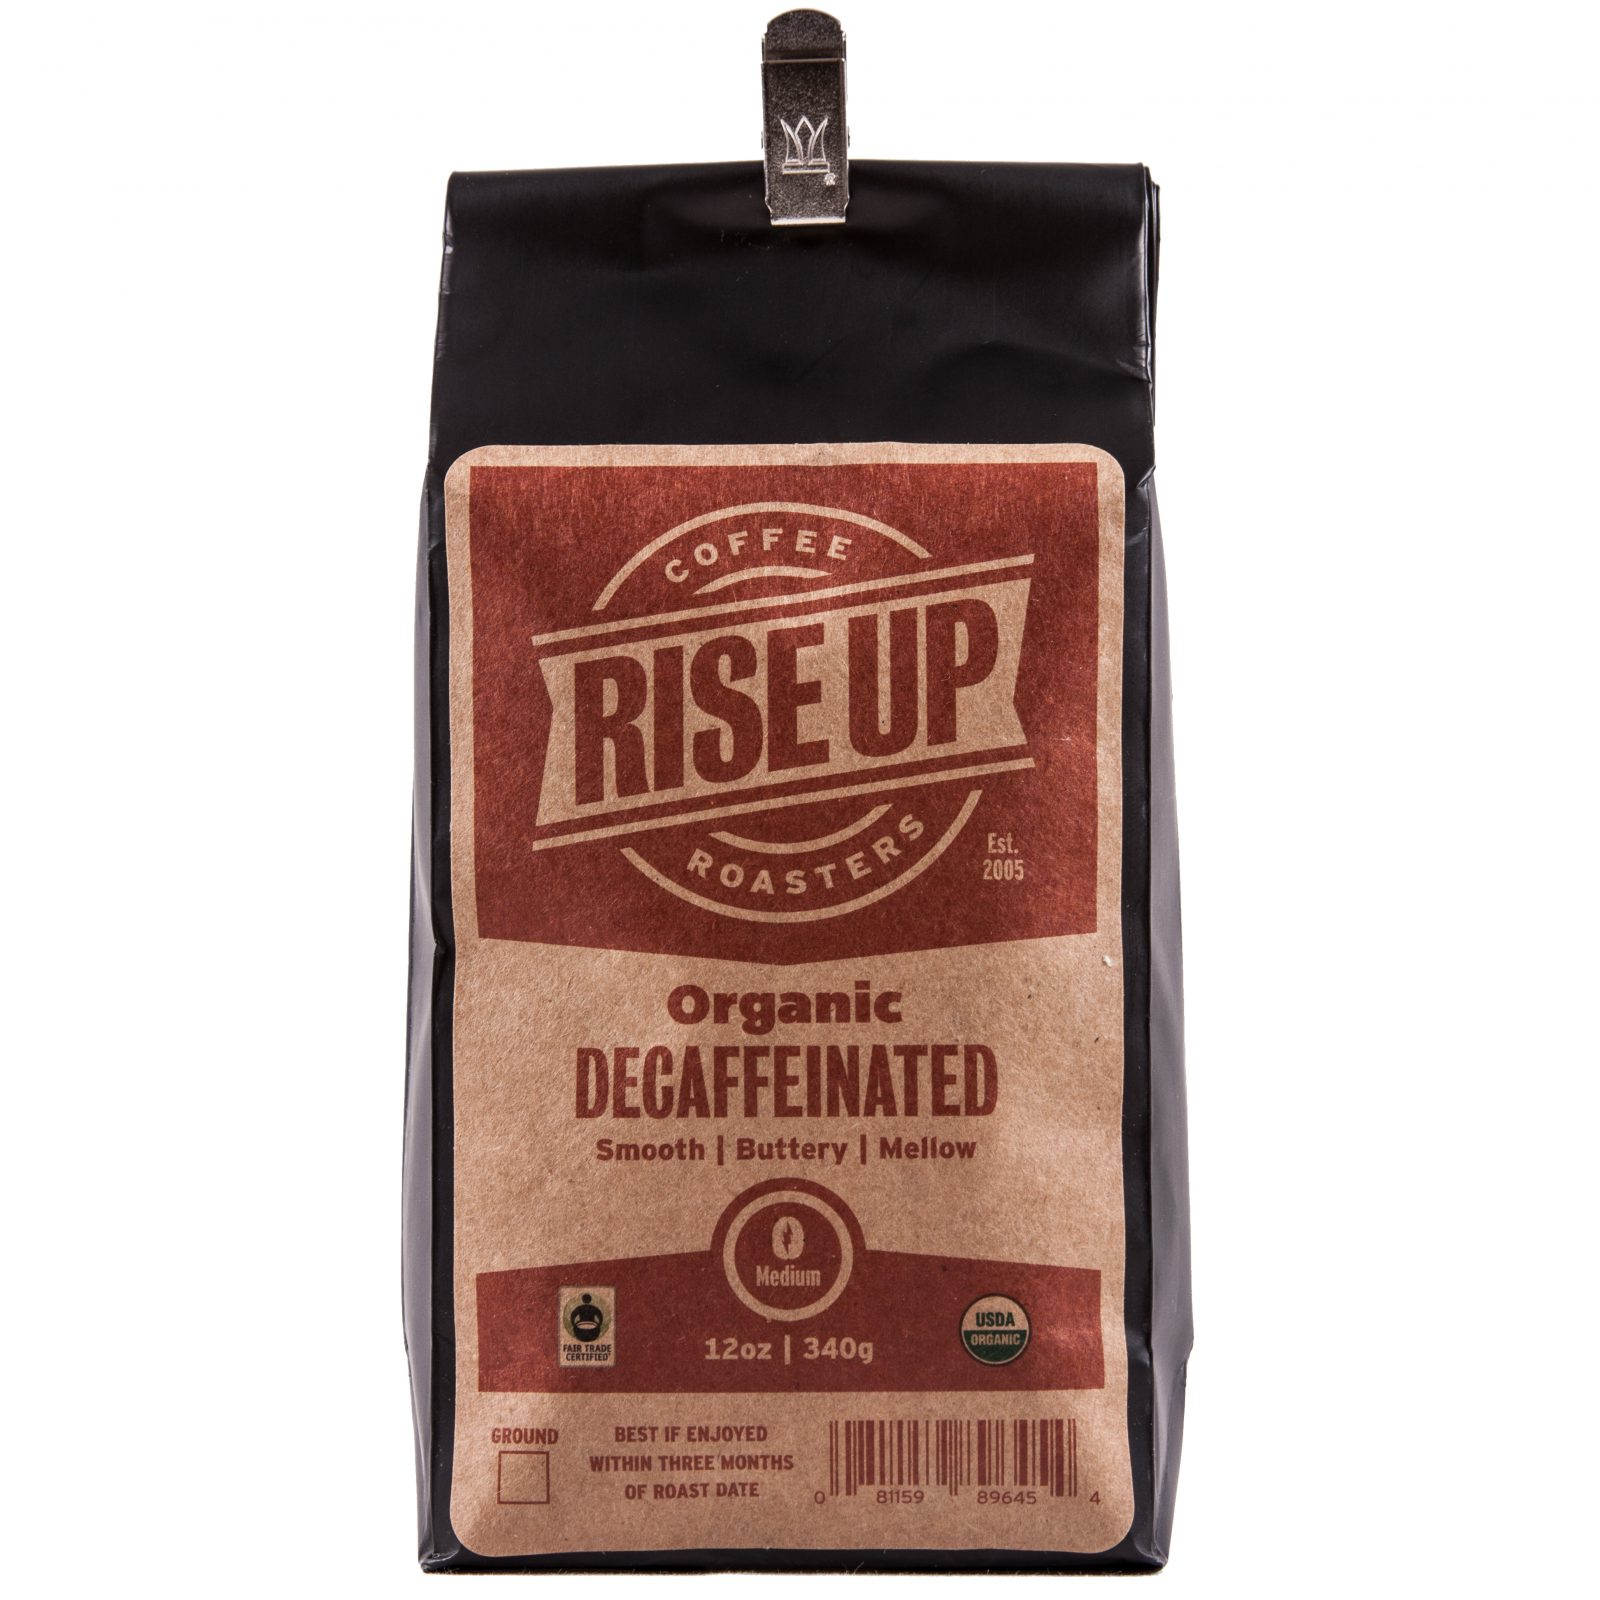 Coffee-12oz-Decaff-1600x1600.jpg